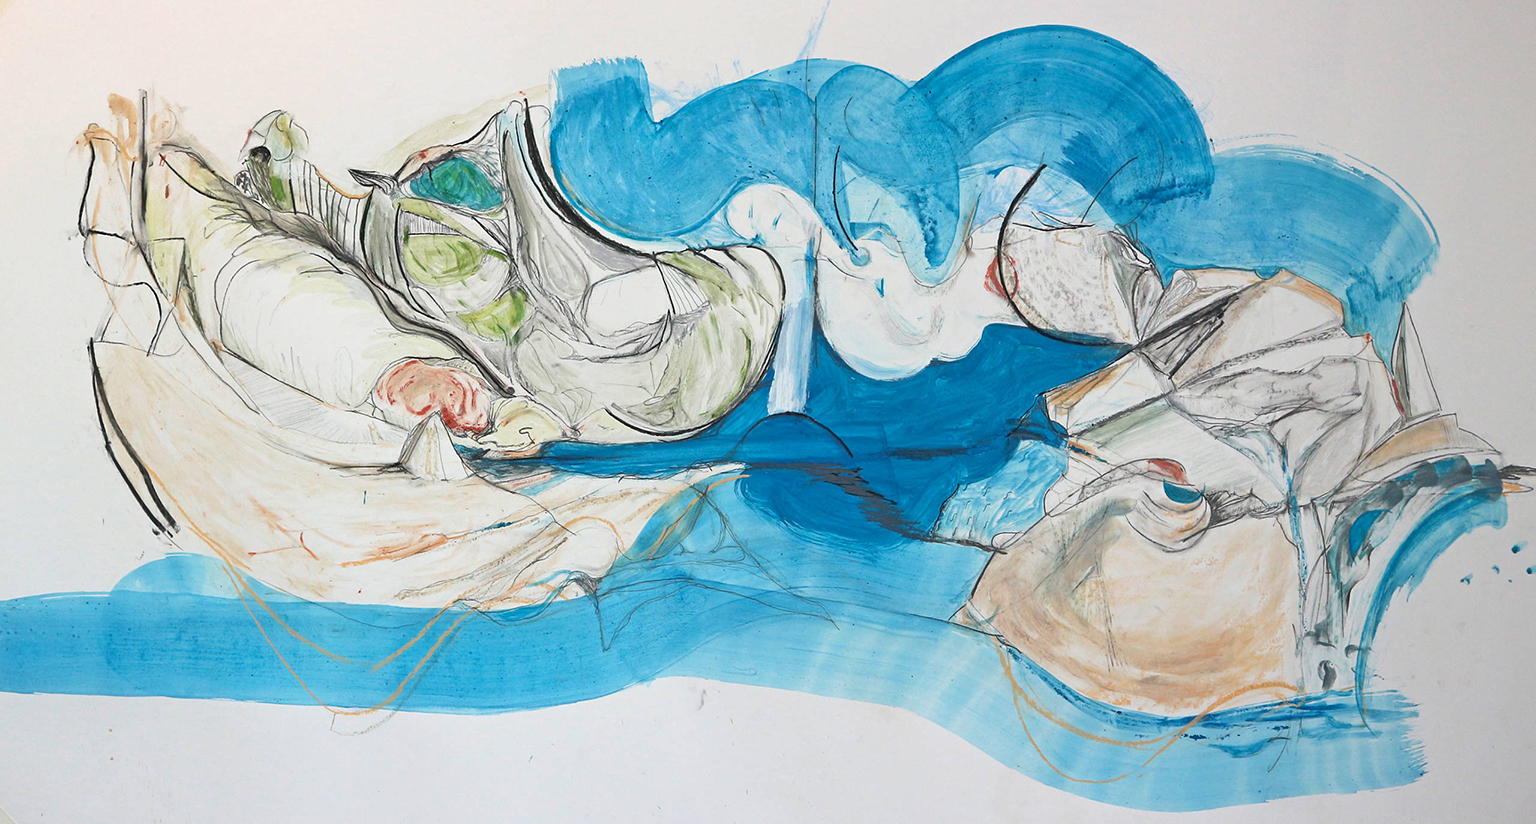 Rosanne Robertson, The Island, 2020. Charcoal, gouache and graphite. Acquired by The Hepworth Wakefield through the Contemporary Art Society's Rapid Response Fund, 2020